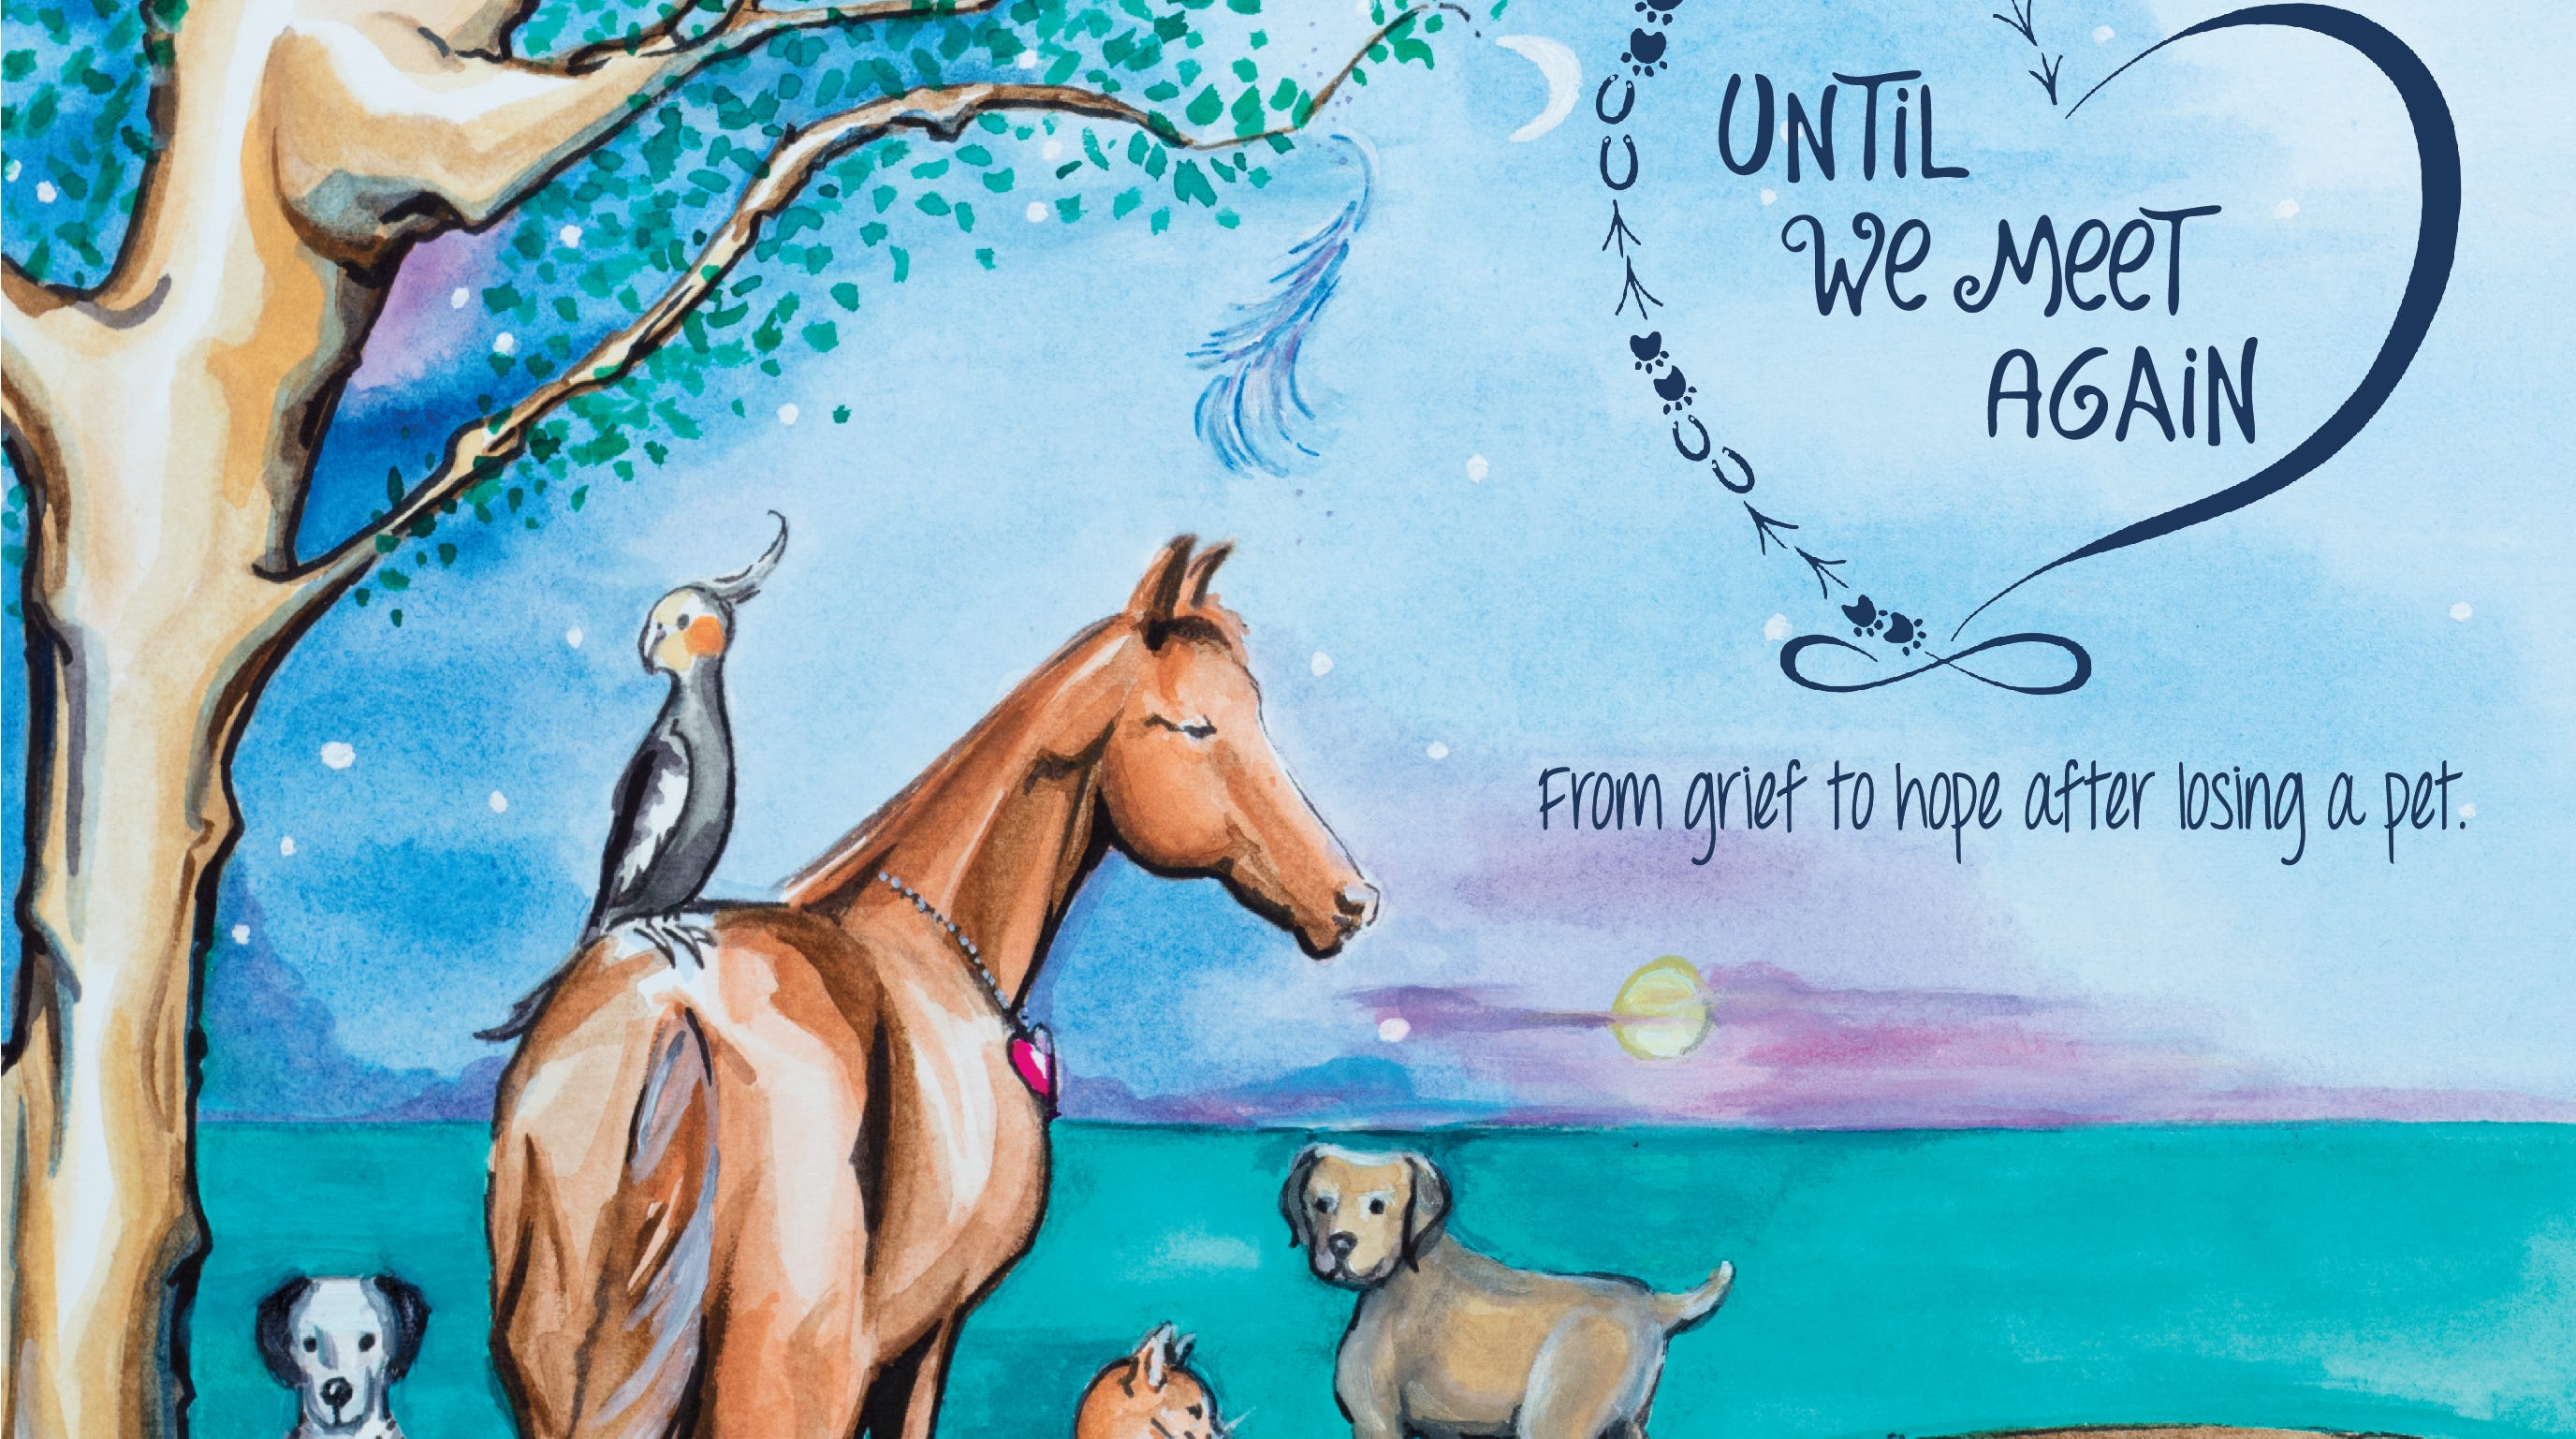 Until We Meet Again: From Grief to Hope After Losing A Pet by Melissa Lyons